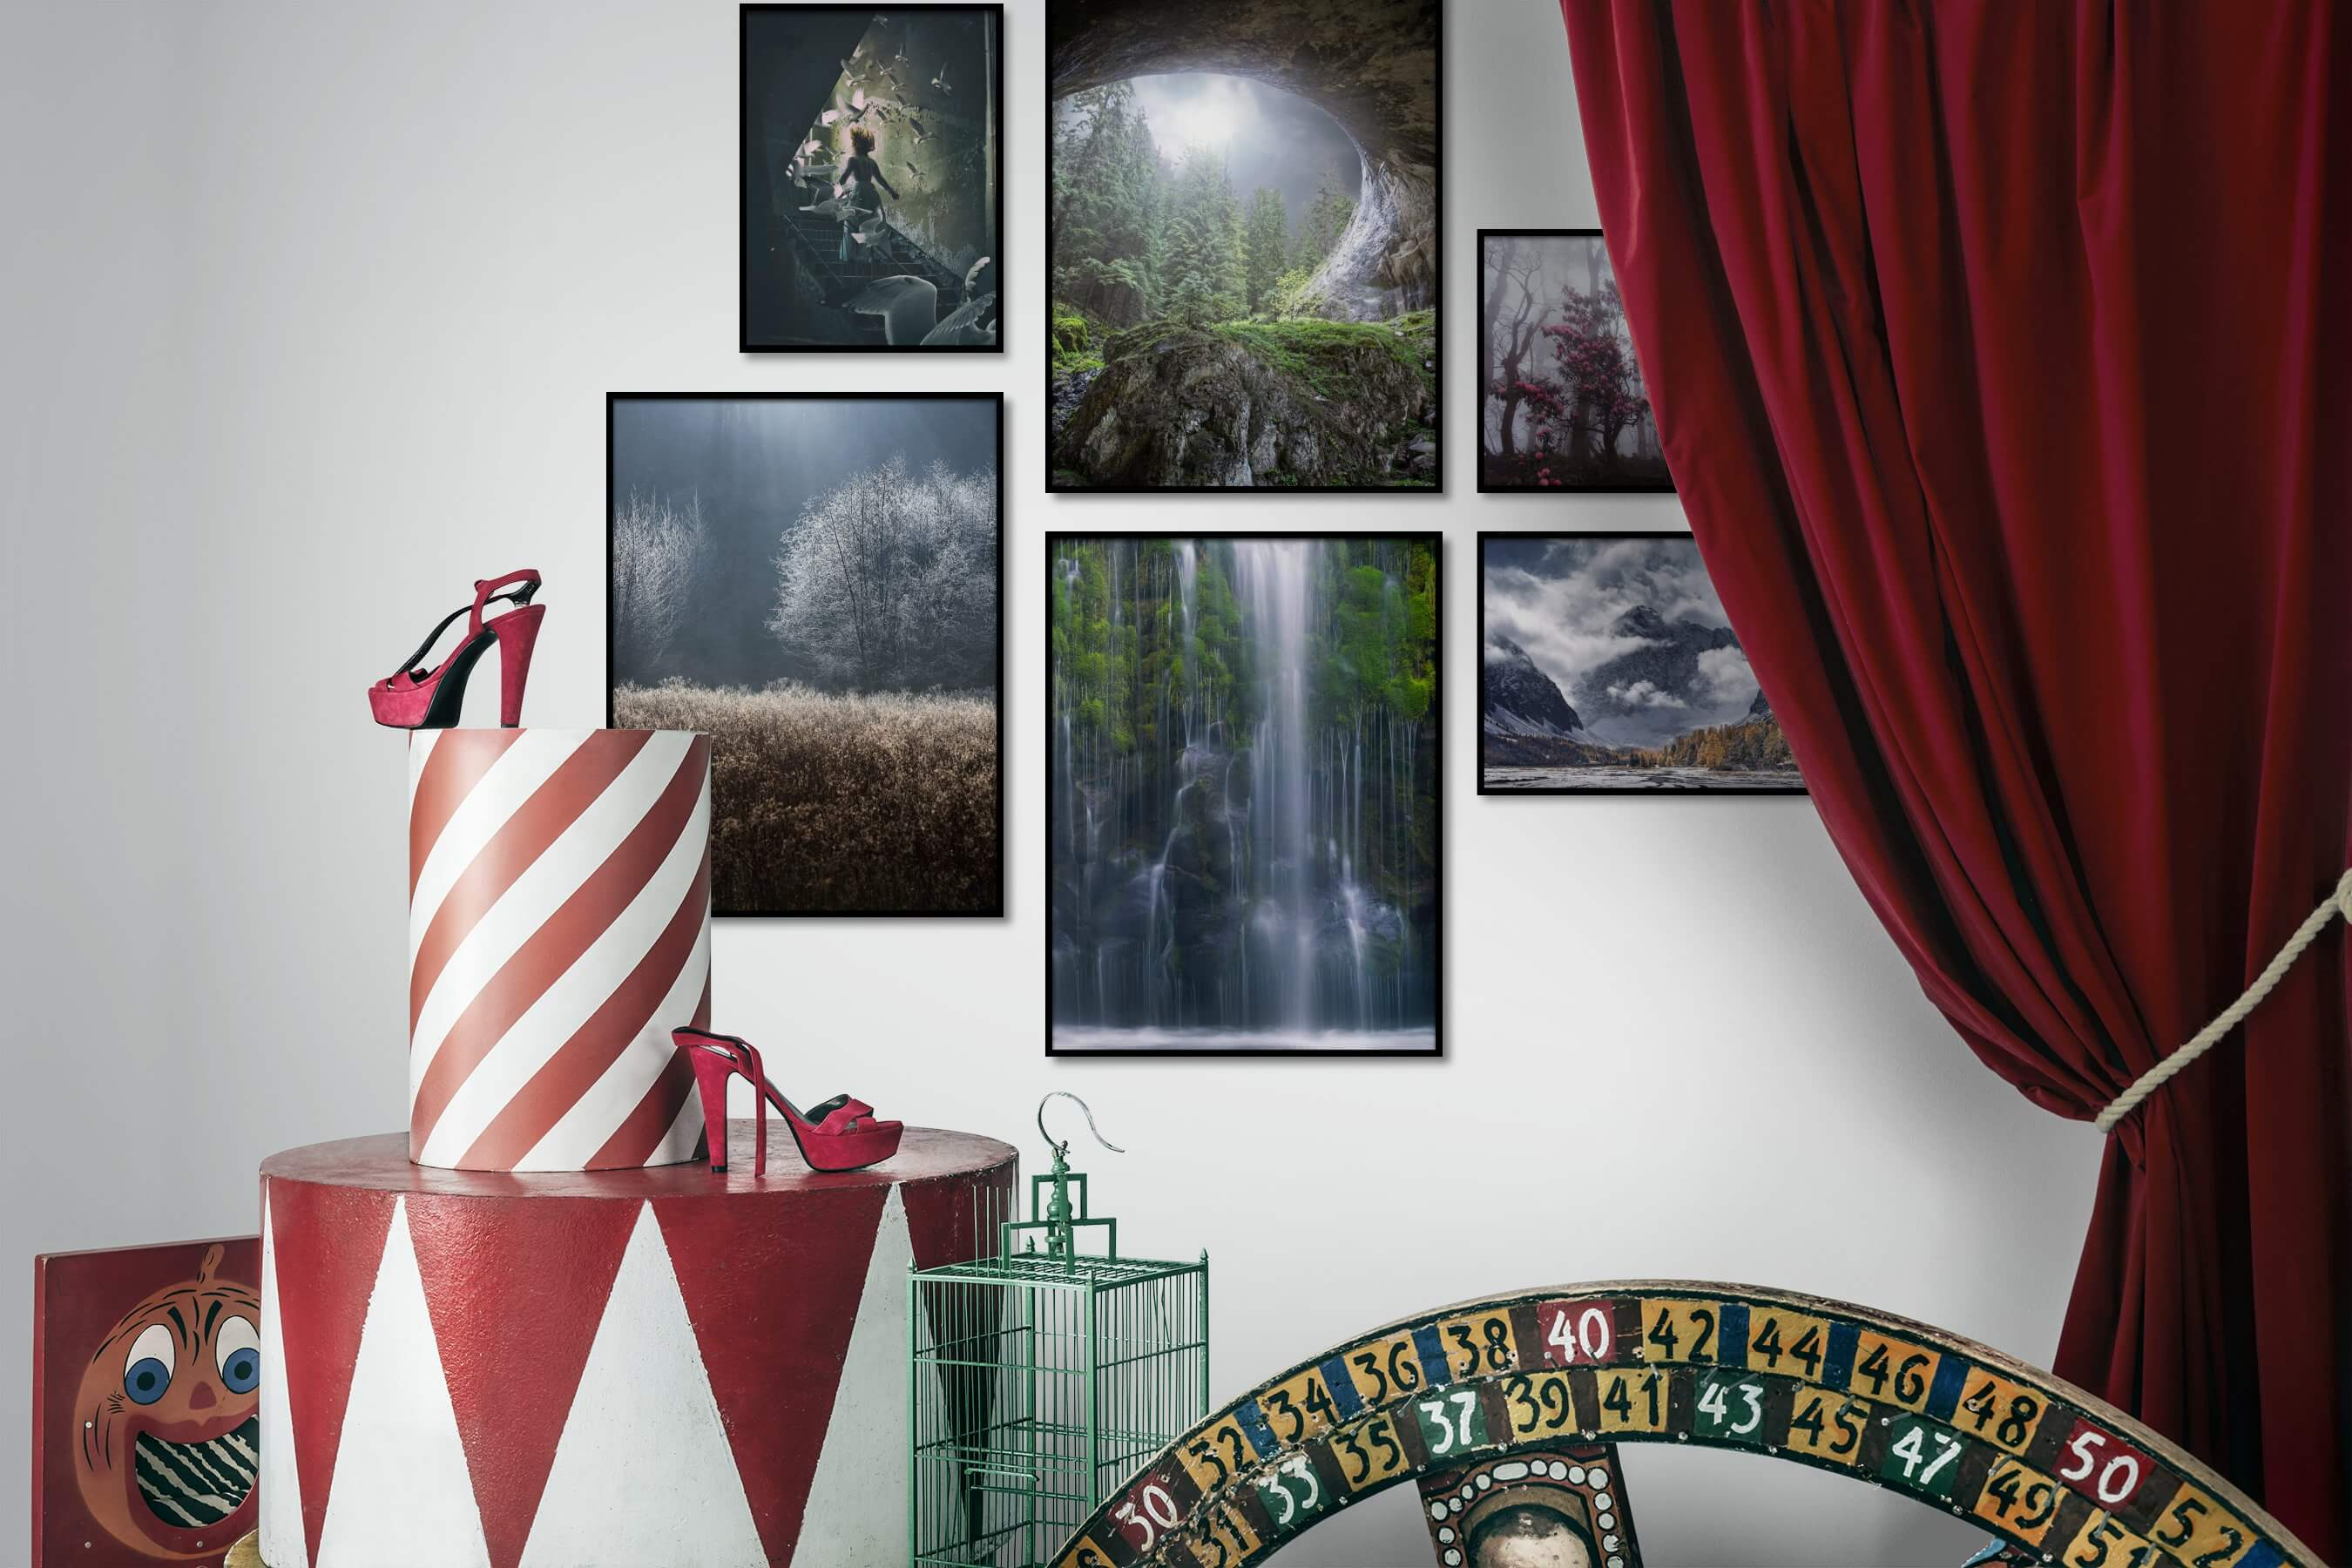 Gallery wall idea with six framed pictures arranged on a wall depicting Artsy, Animals, Vintage, Nature, Mindfulness, and Flowers & Plants